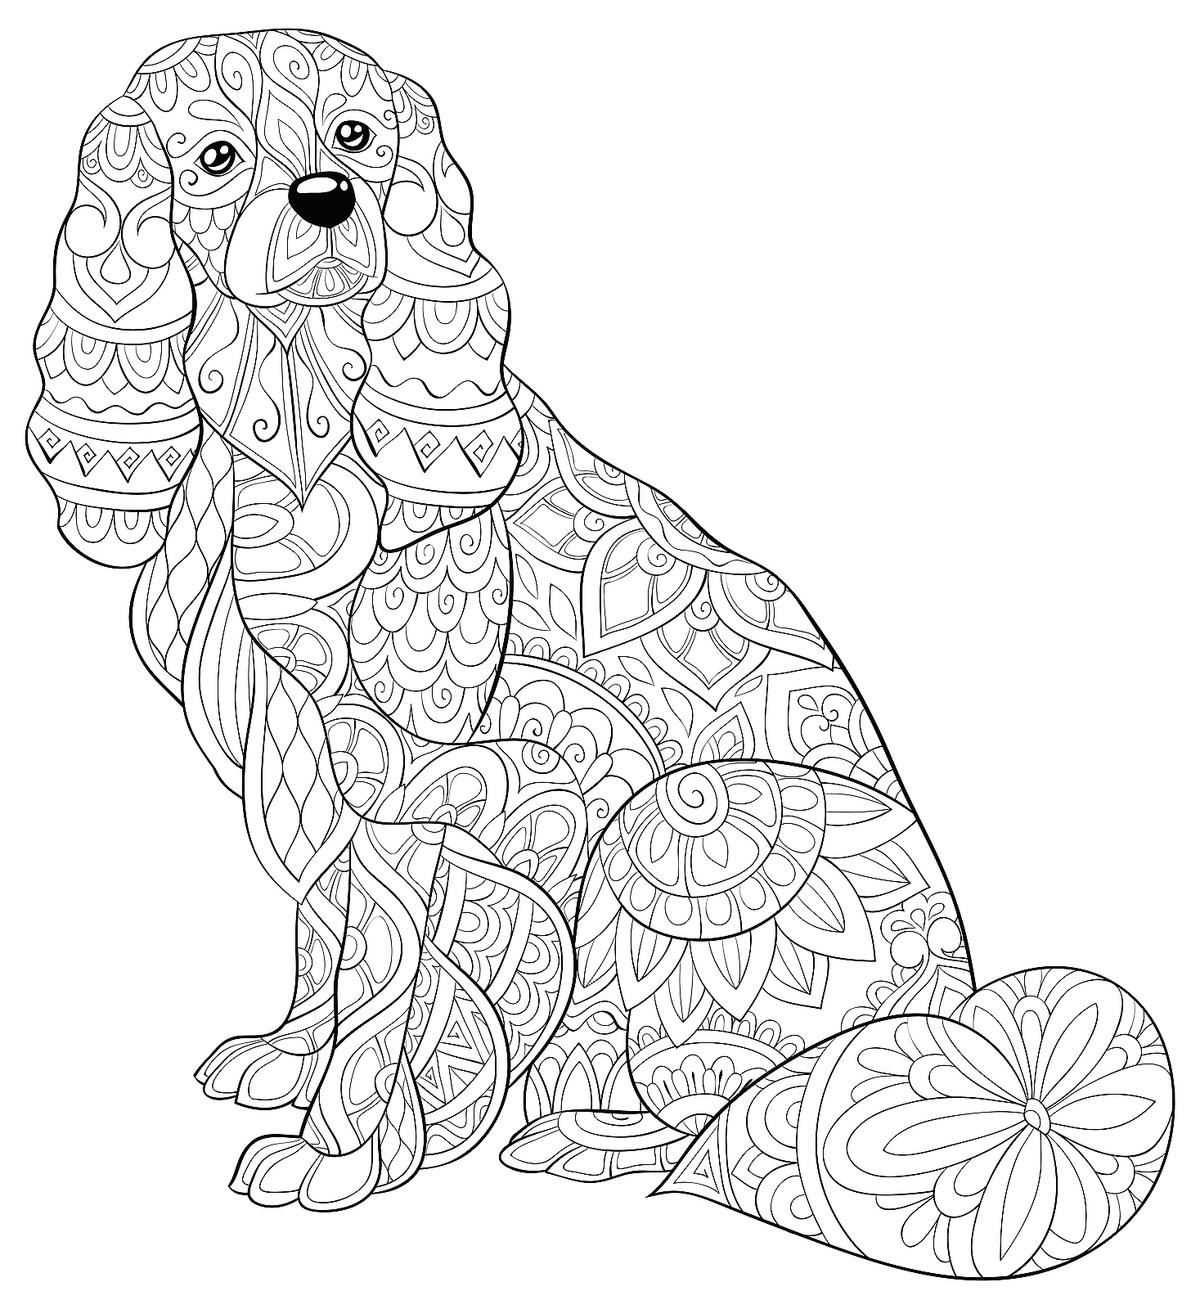 coloring pic of dog husky coloring pages best coloring pages for kids dog pic coloring of